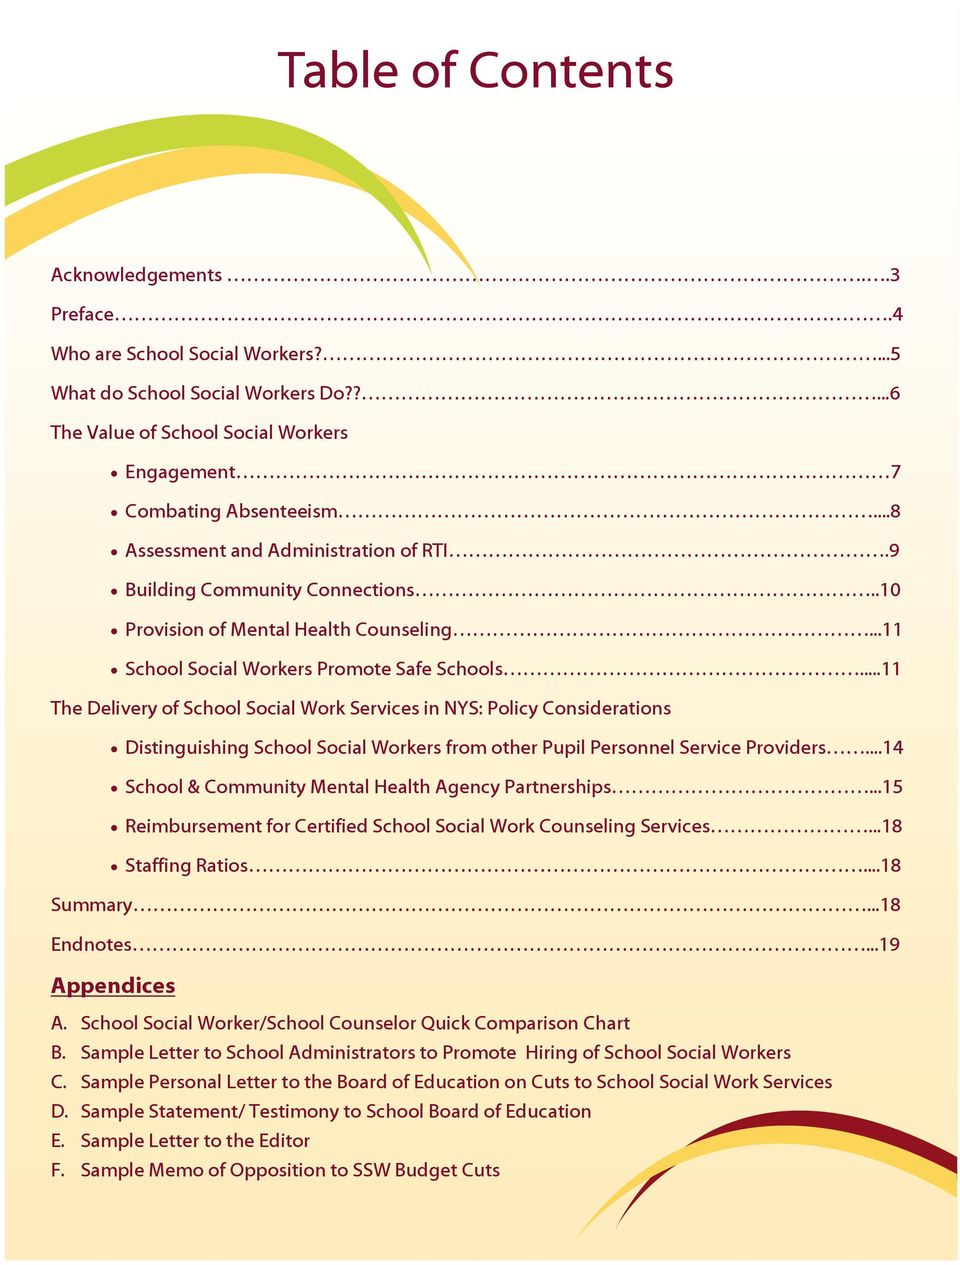 nys school social worker survival kit pdf 11 the delivery of school social work services in nys policy considerations distinguishing